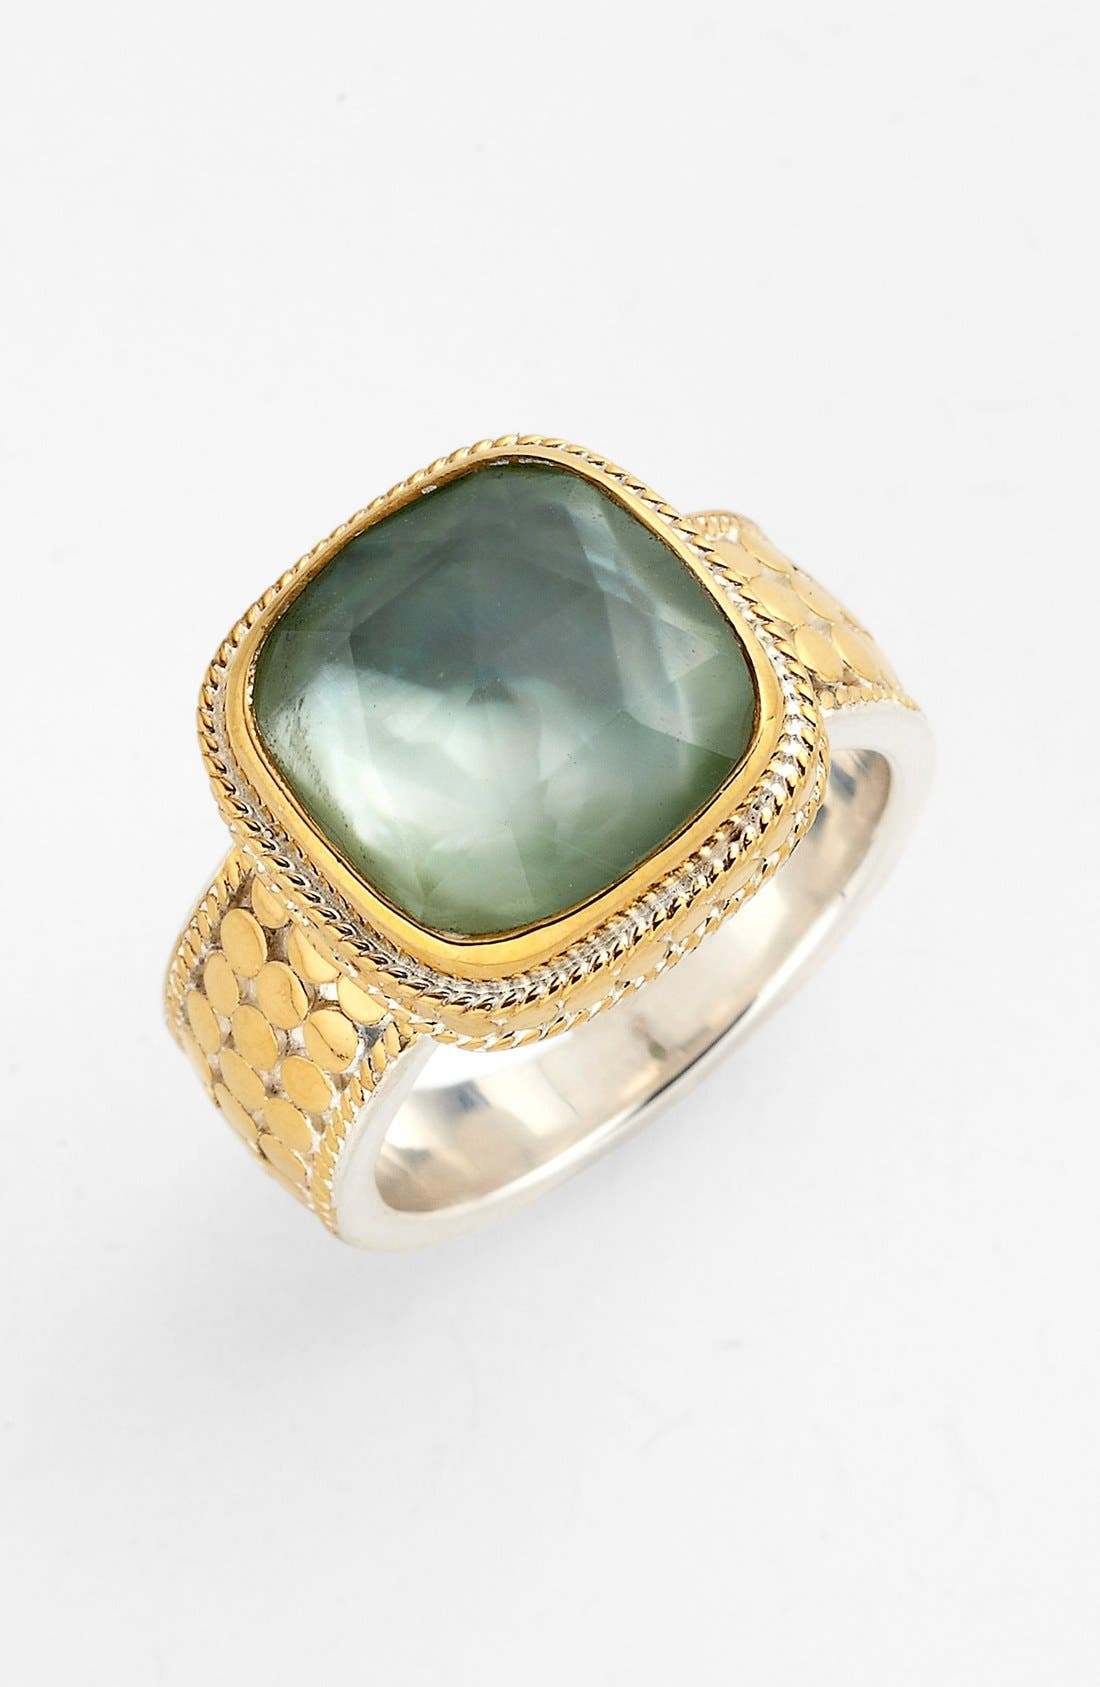 Alternate Image 1 Selected - Anna Beck 'Gili' Square Doublet Ring